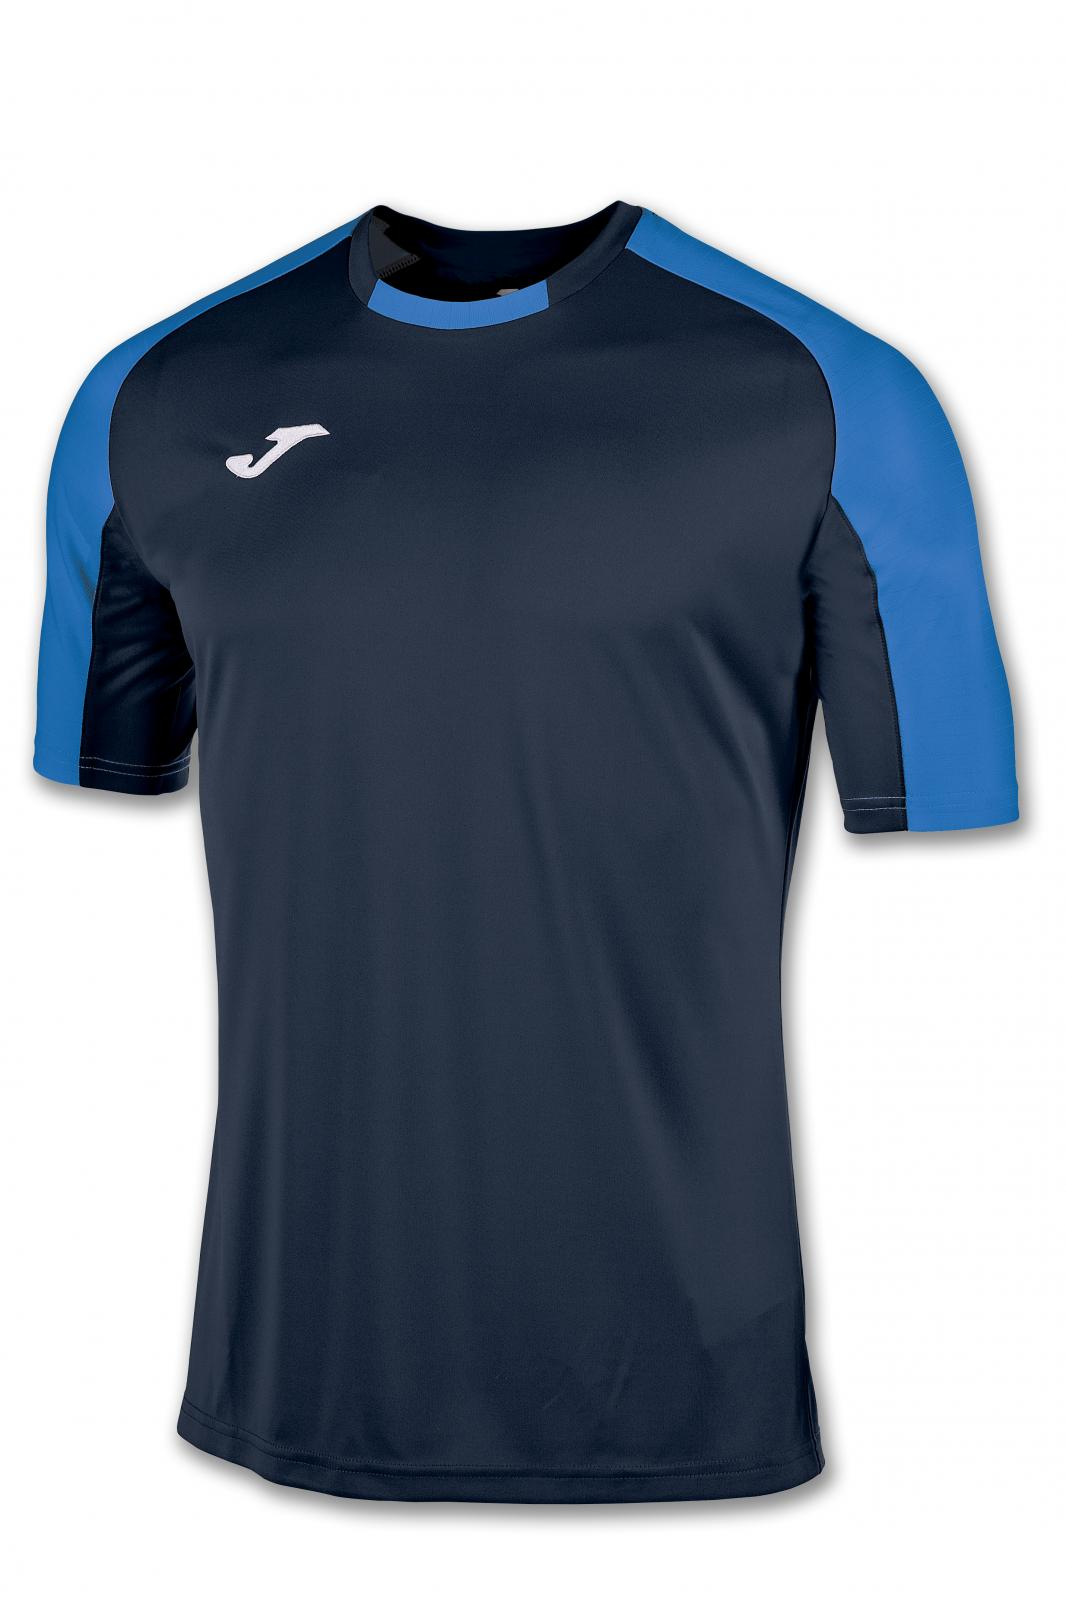 CAMISETA JOMA ESSENTIAL MARINO ROYAL 101105.307